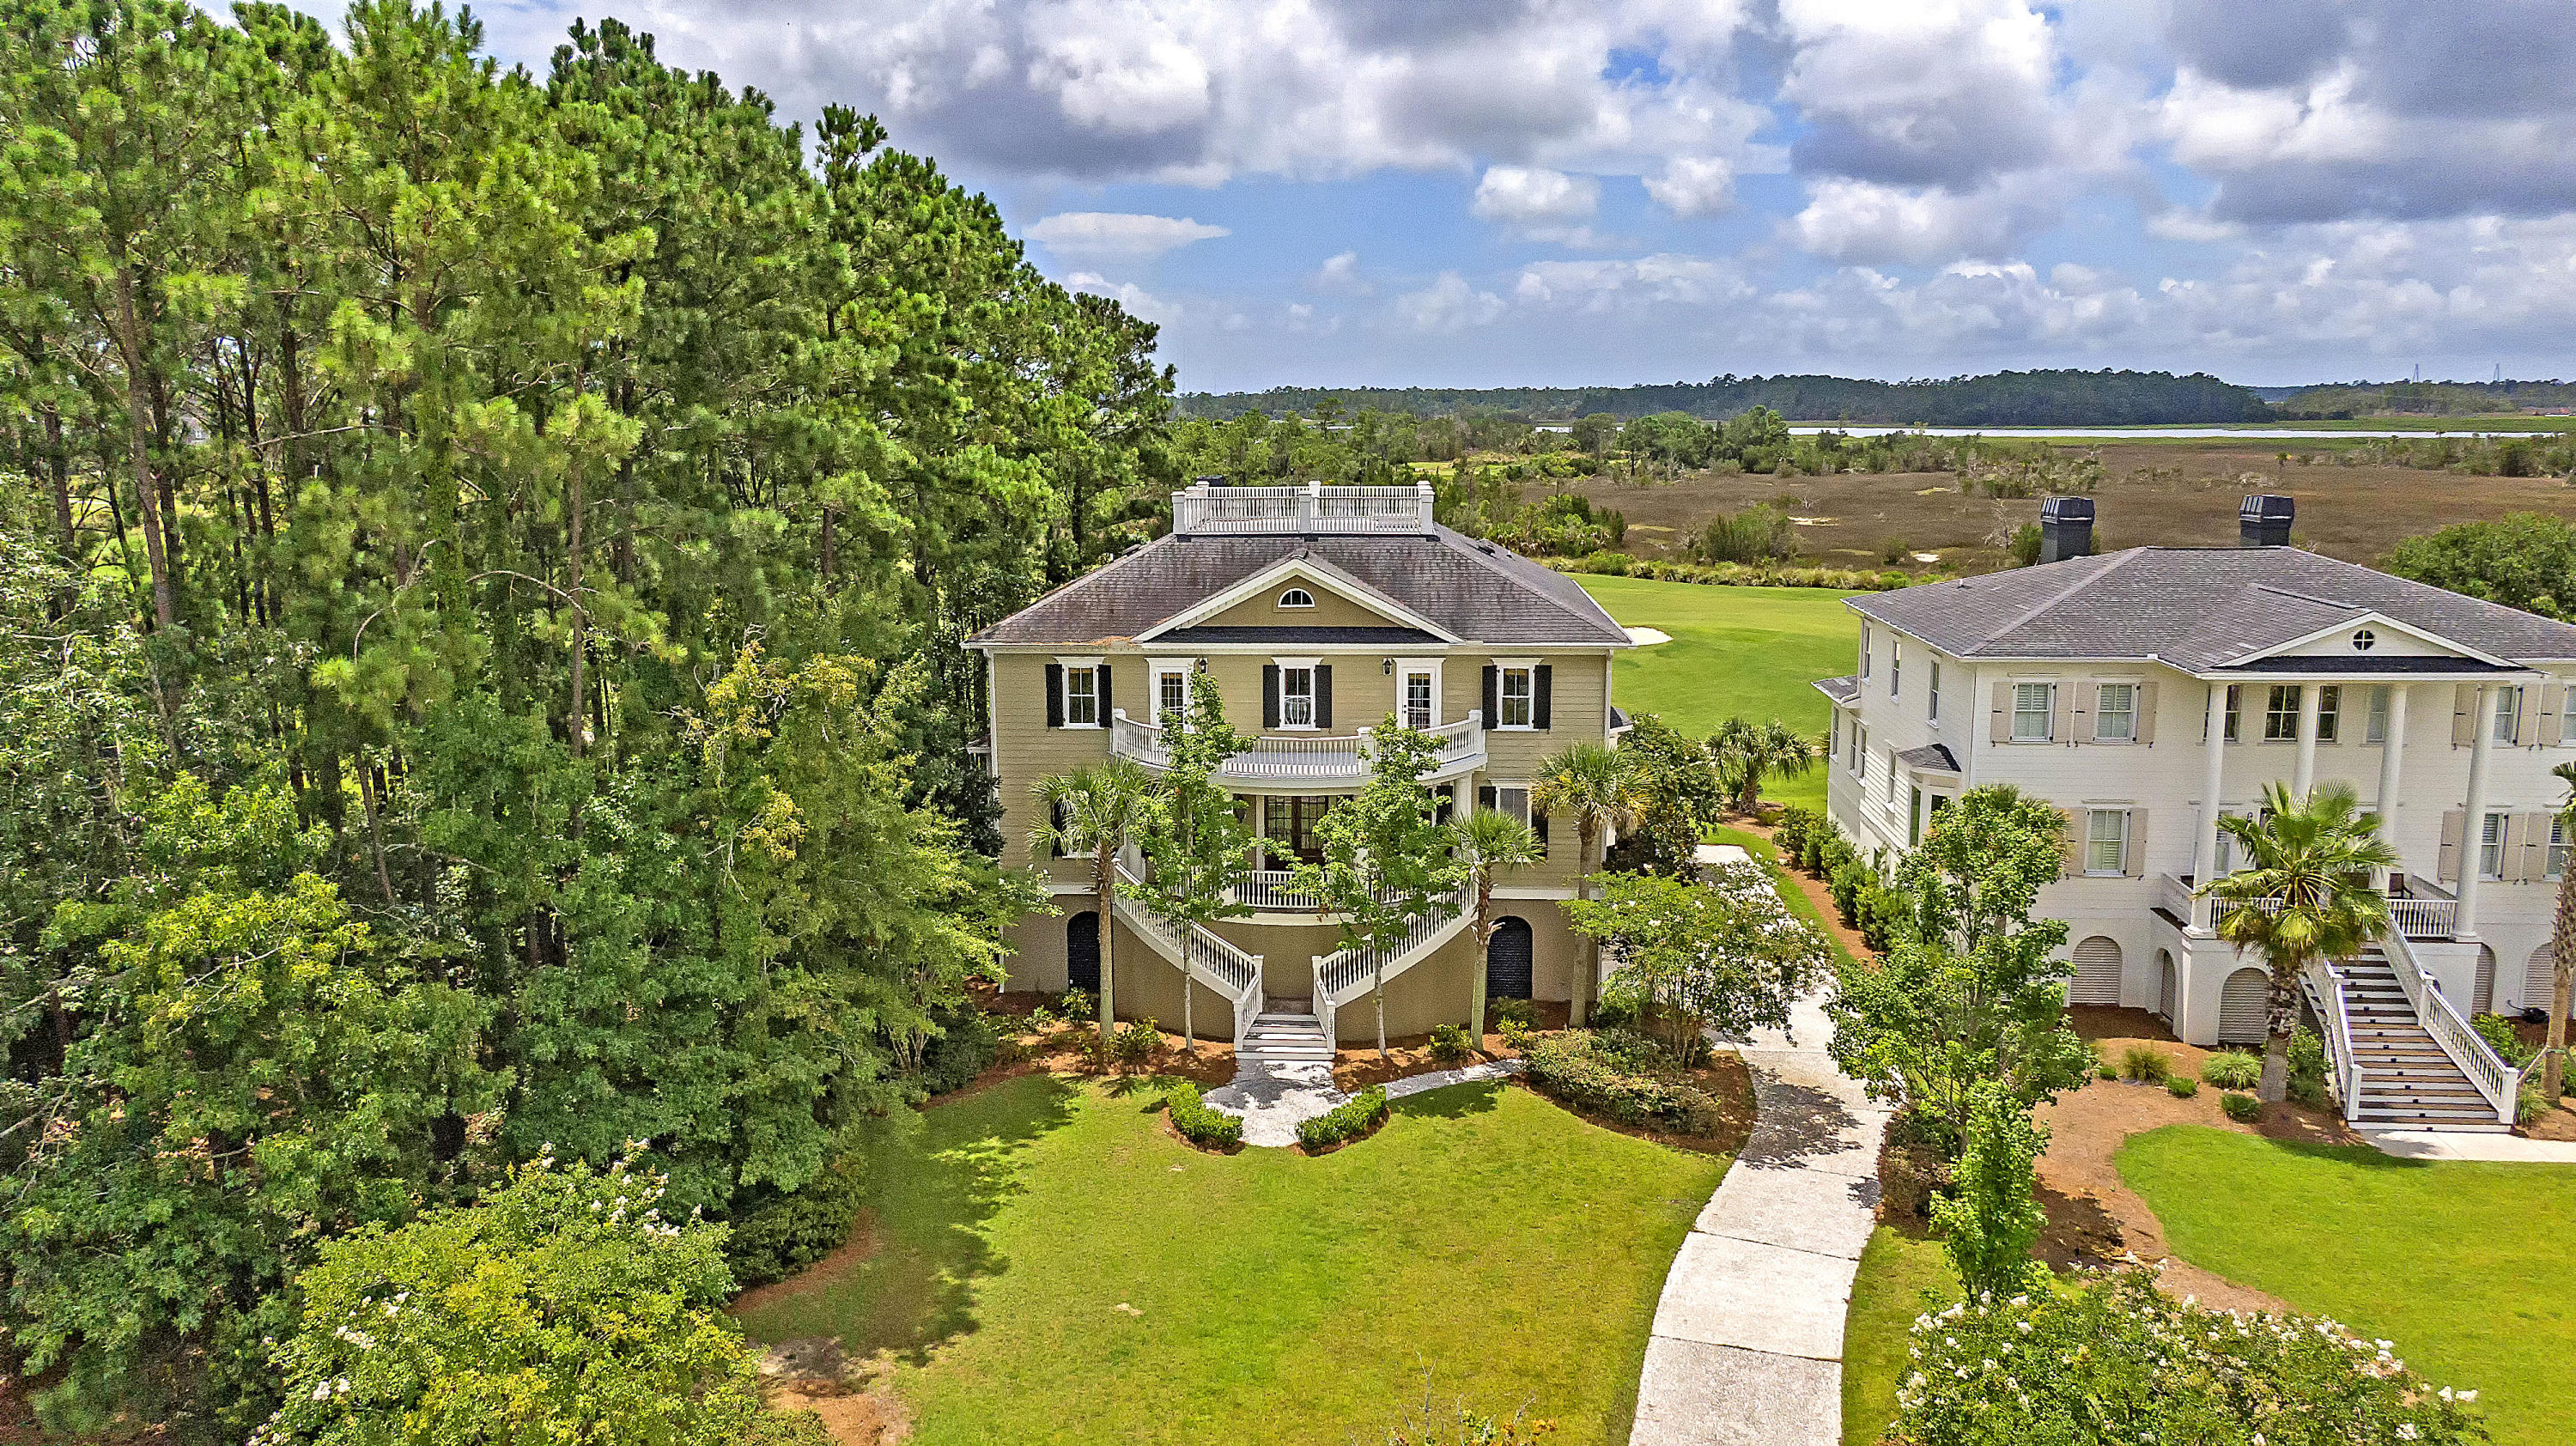 Rivertowne Country Club Homes For Sale - 1632 Rivertowne Country Club, Mount Pleasant, SC - 8